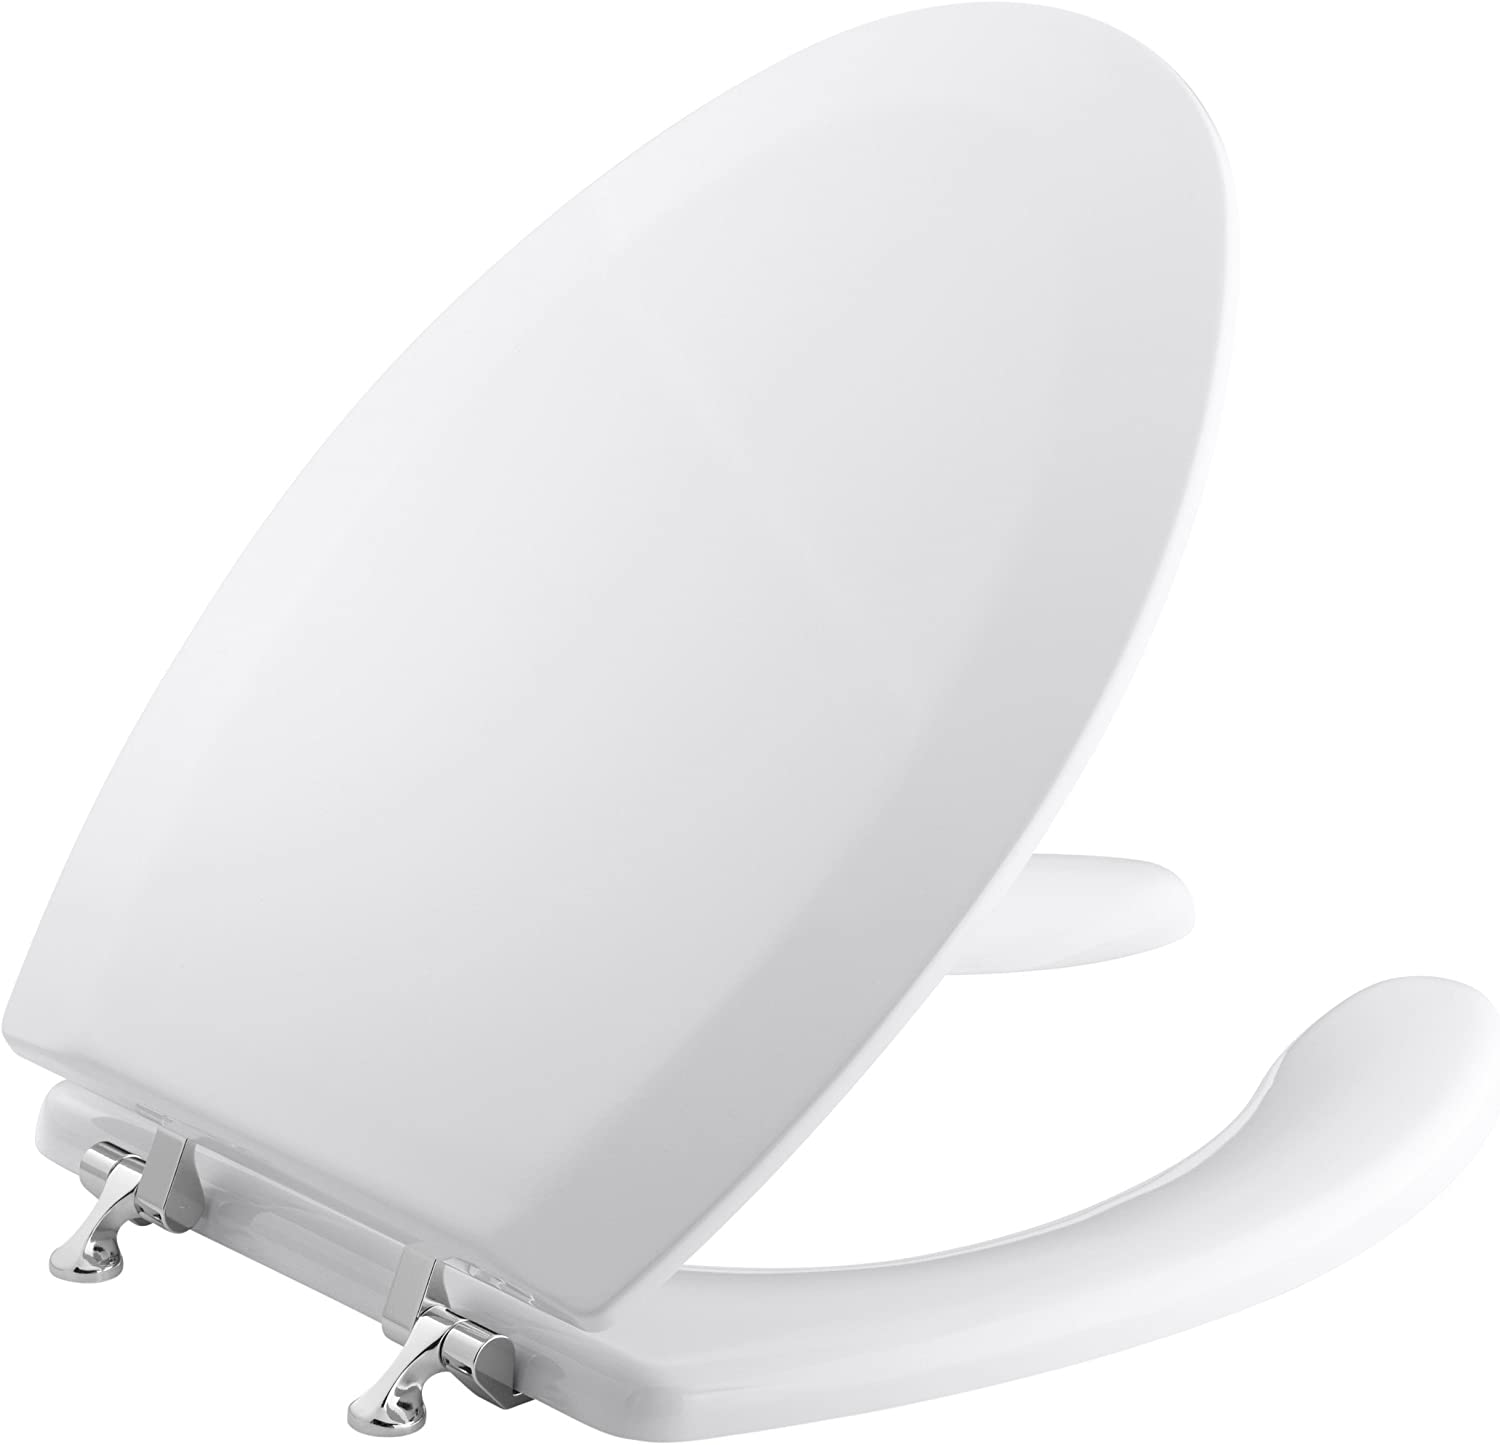 KOHLER K-4710-GS-0 Triko Elongated Molded Toilet Seat with Open Front, Cover and Polished Chrome Hinges, White